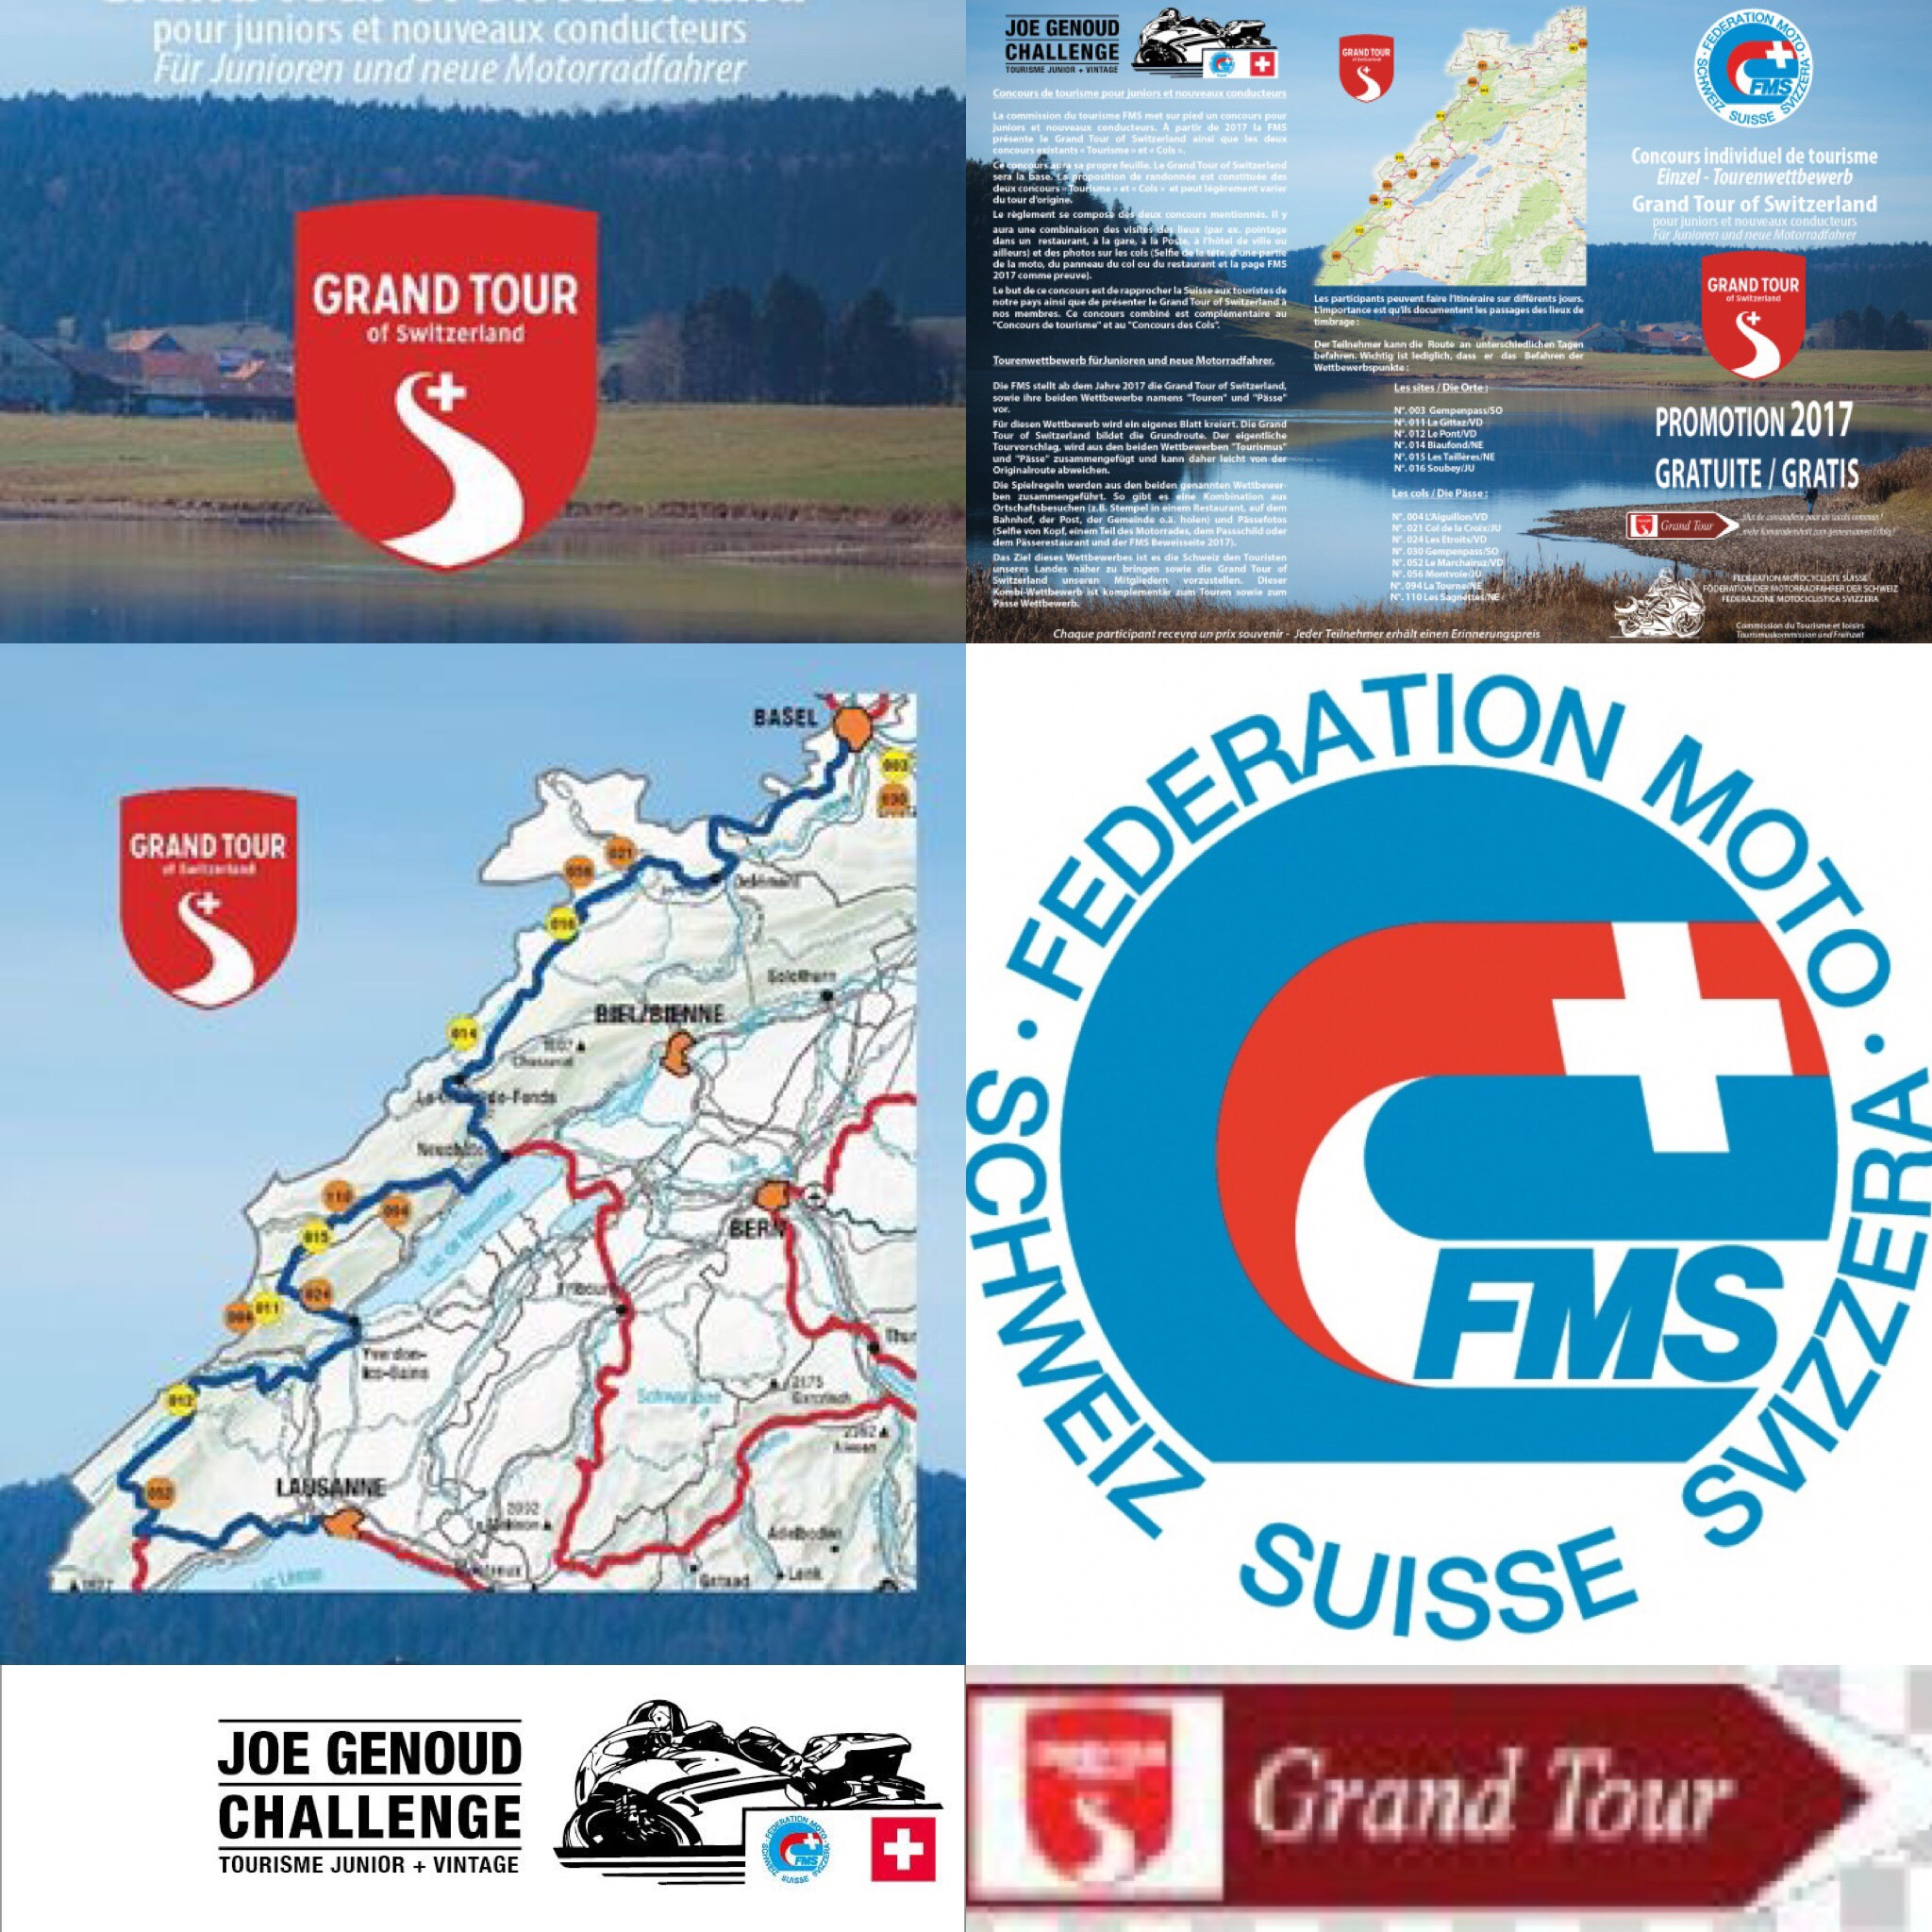 FMS Joe-Genoud-Challenge on the Grand Tour of Switzerland